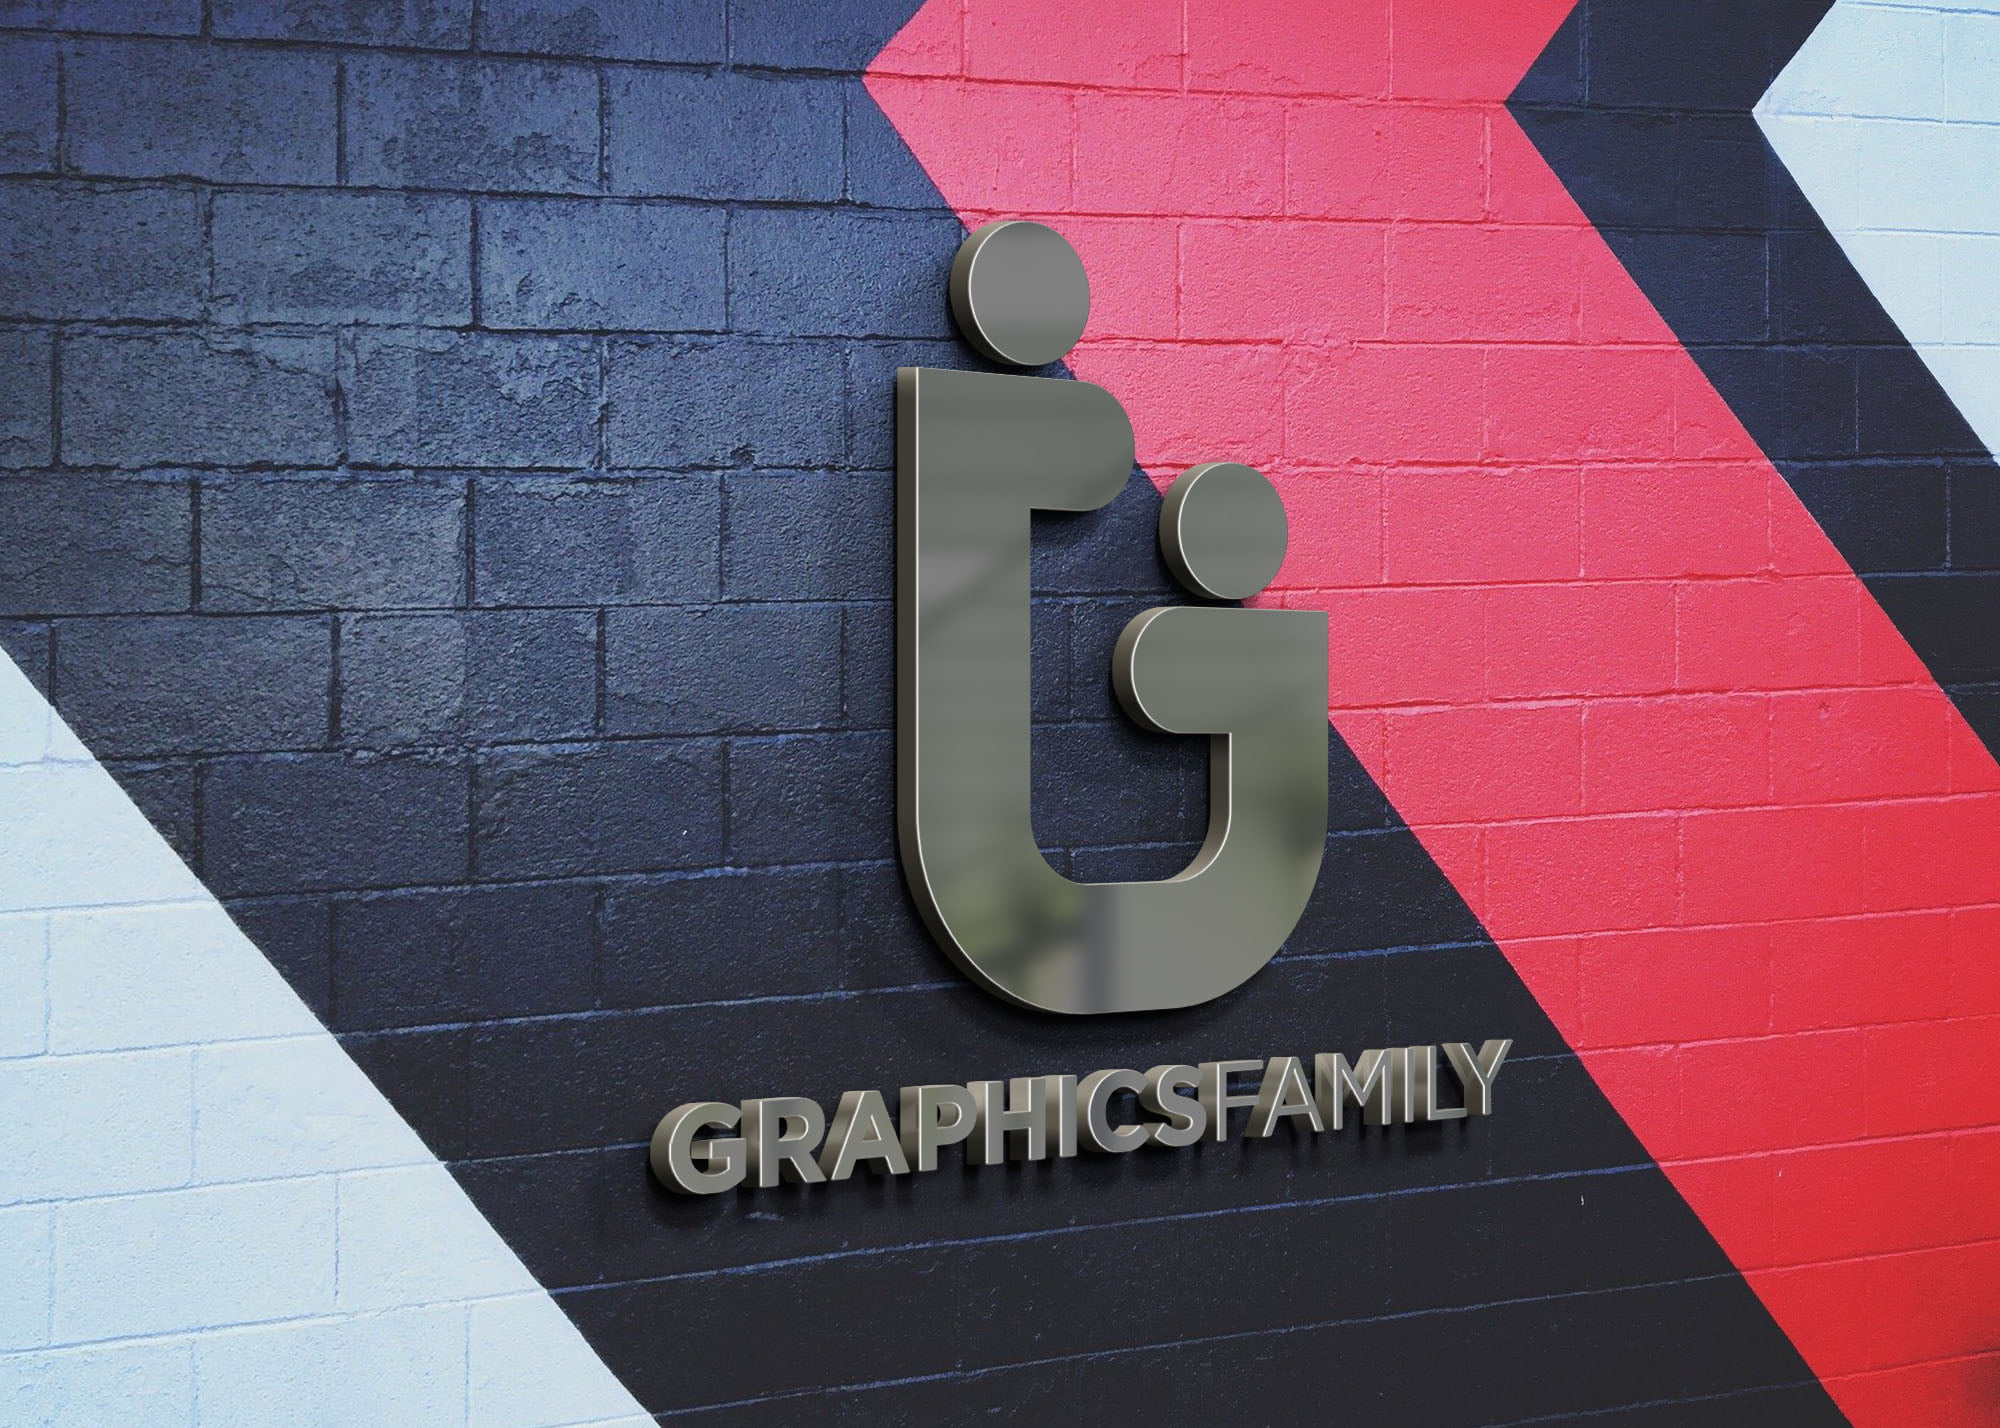 graphicsfamily on 3d wall